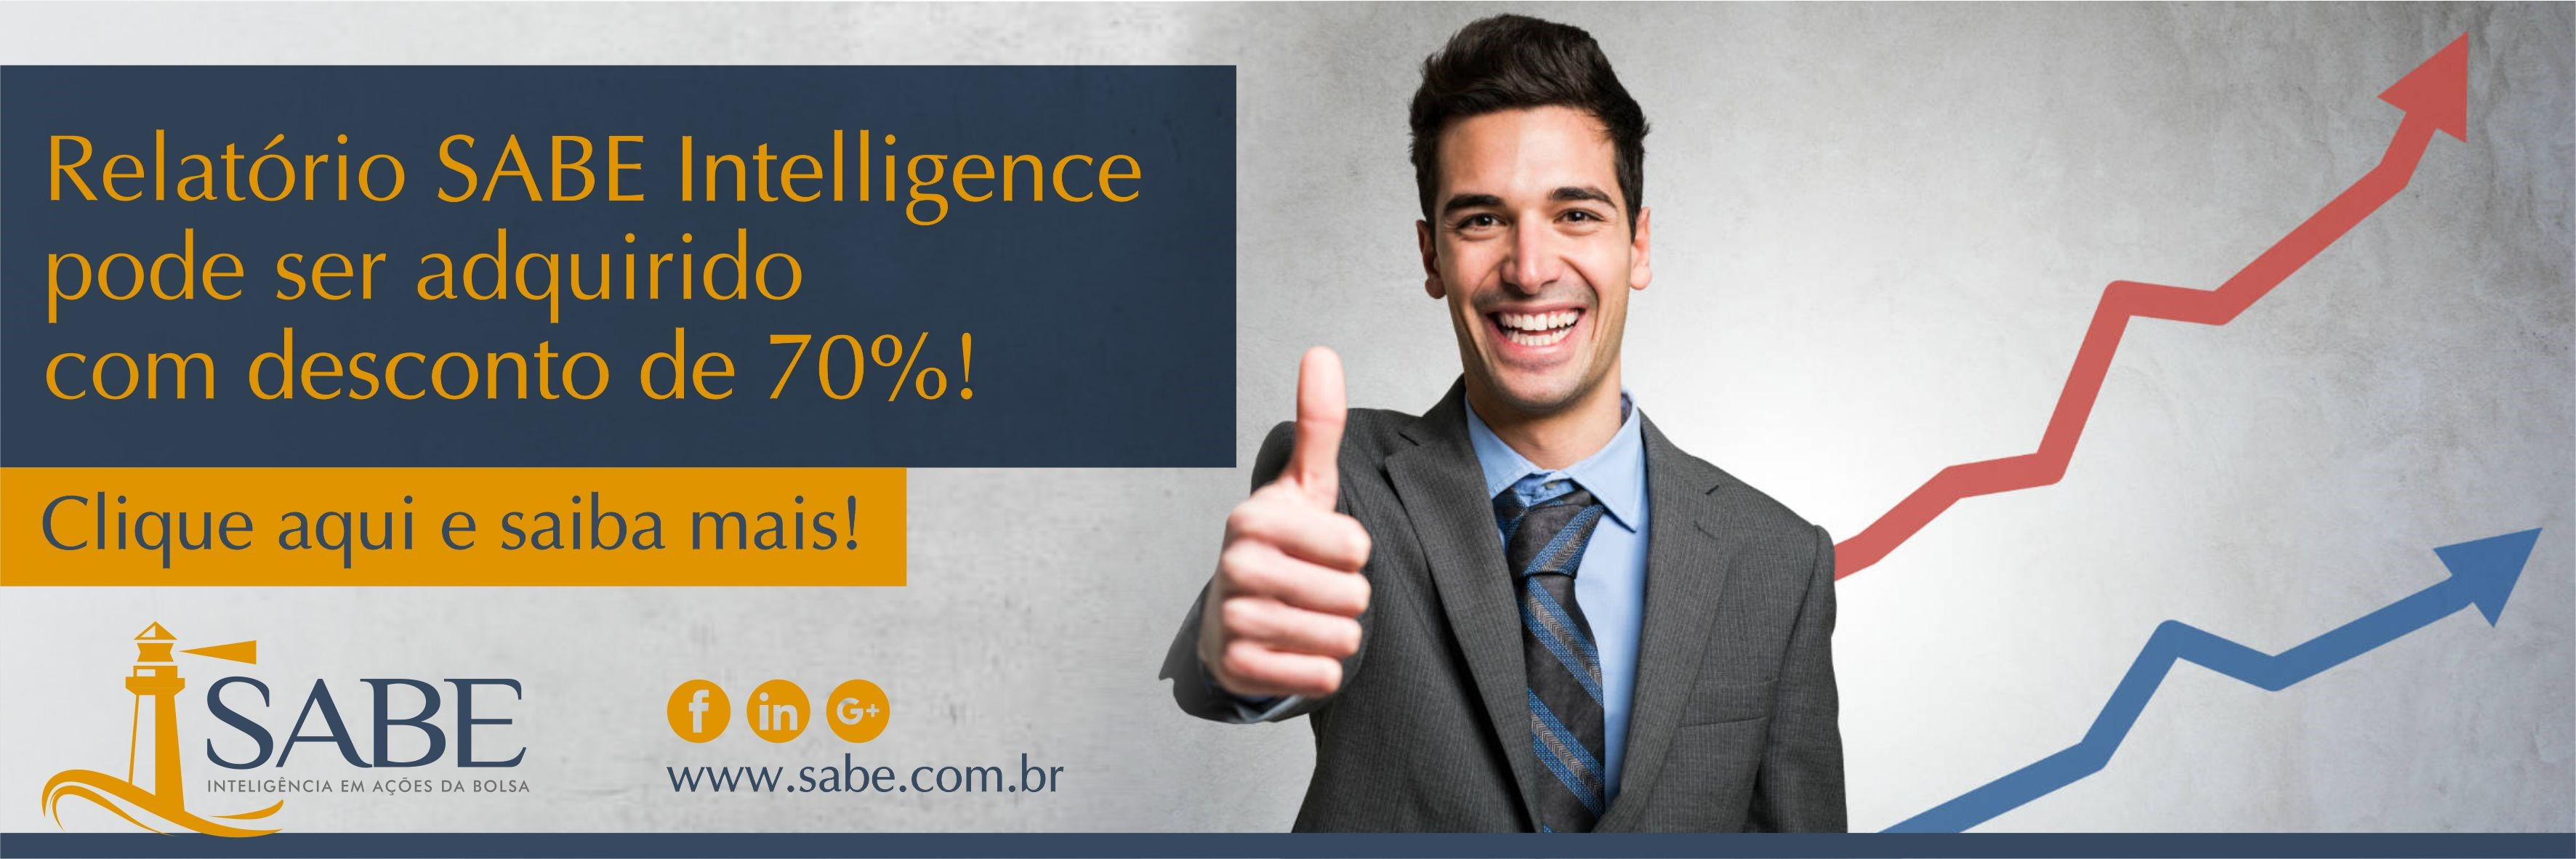 Promo SABE Intelligence